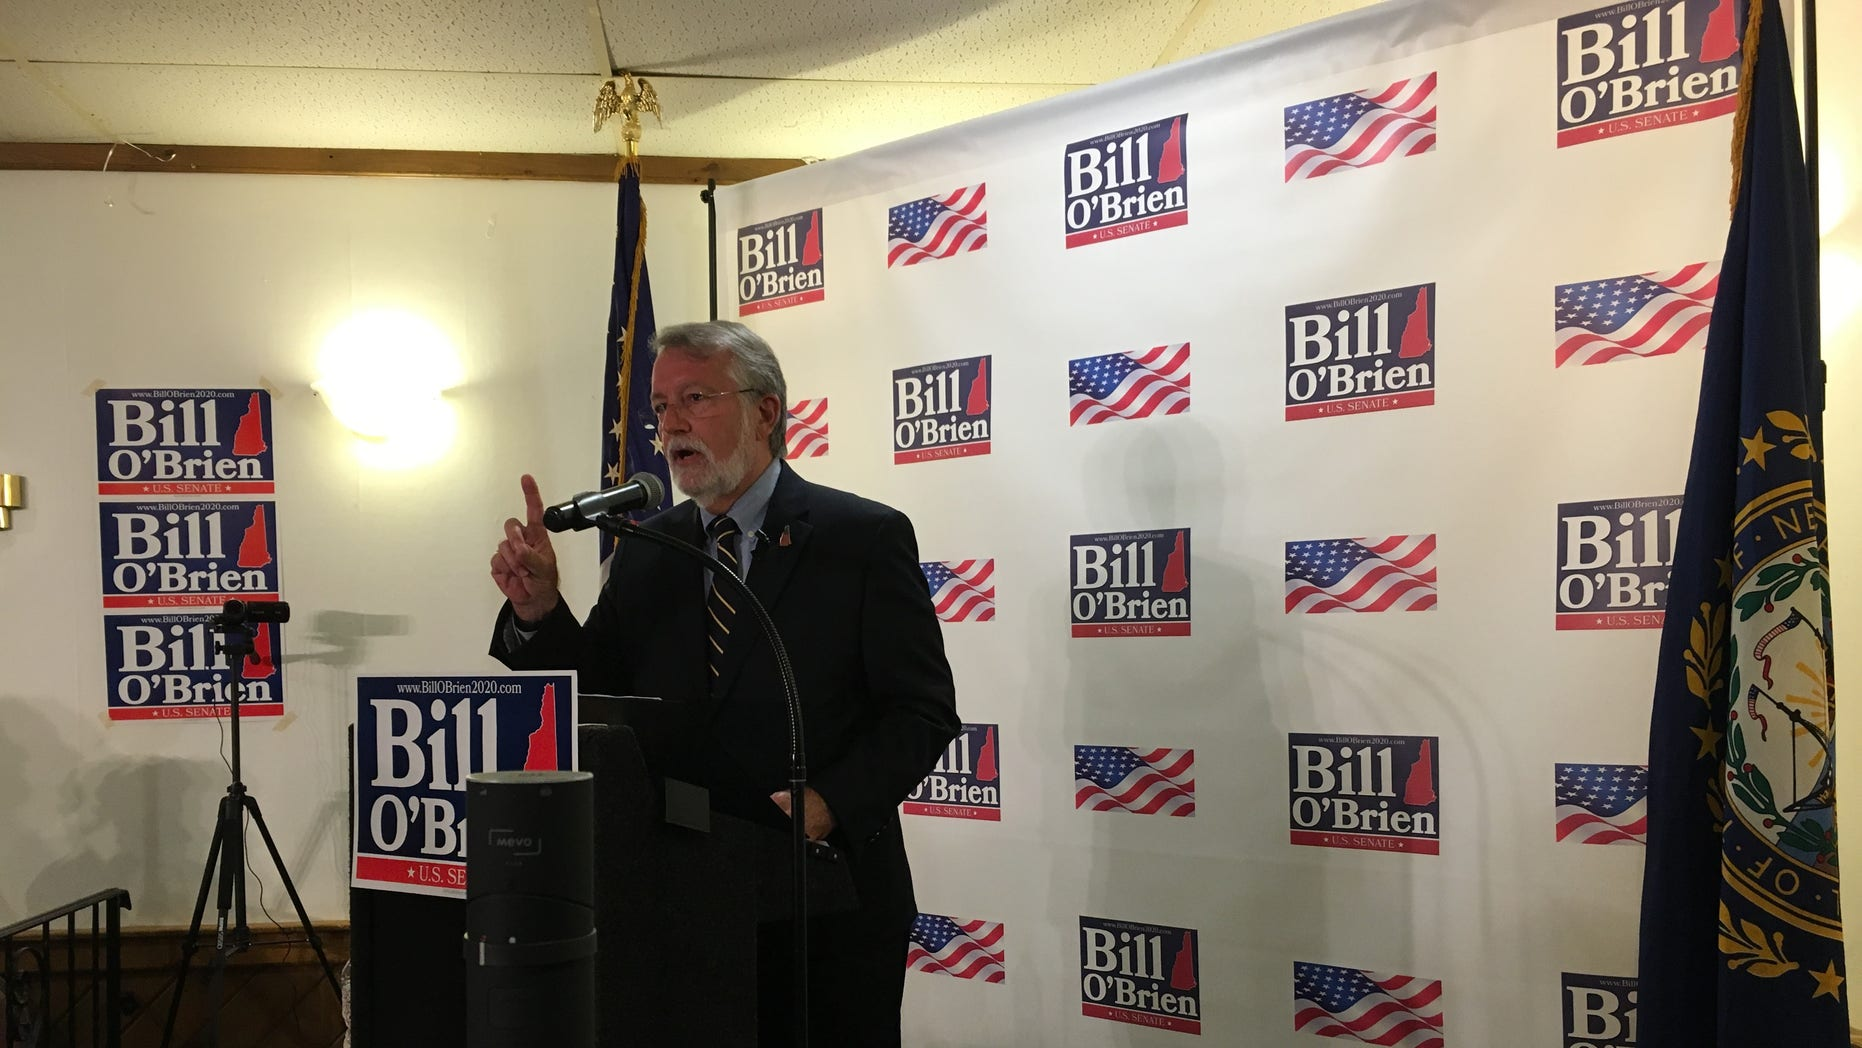 Former New Hampshire House Speaker Bill O'Brien announces his candidacy for the Republican Senate nomination this week.